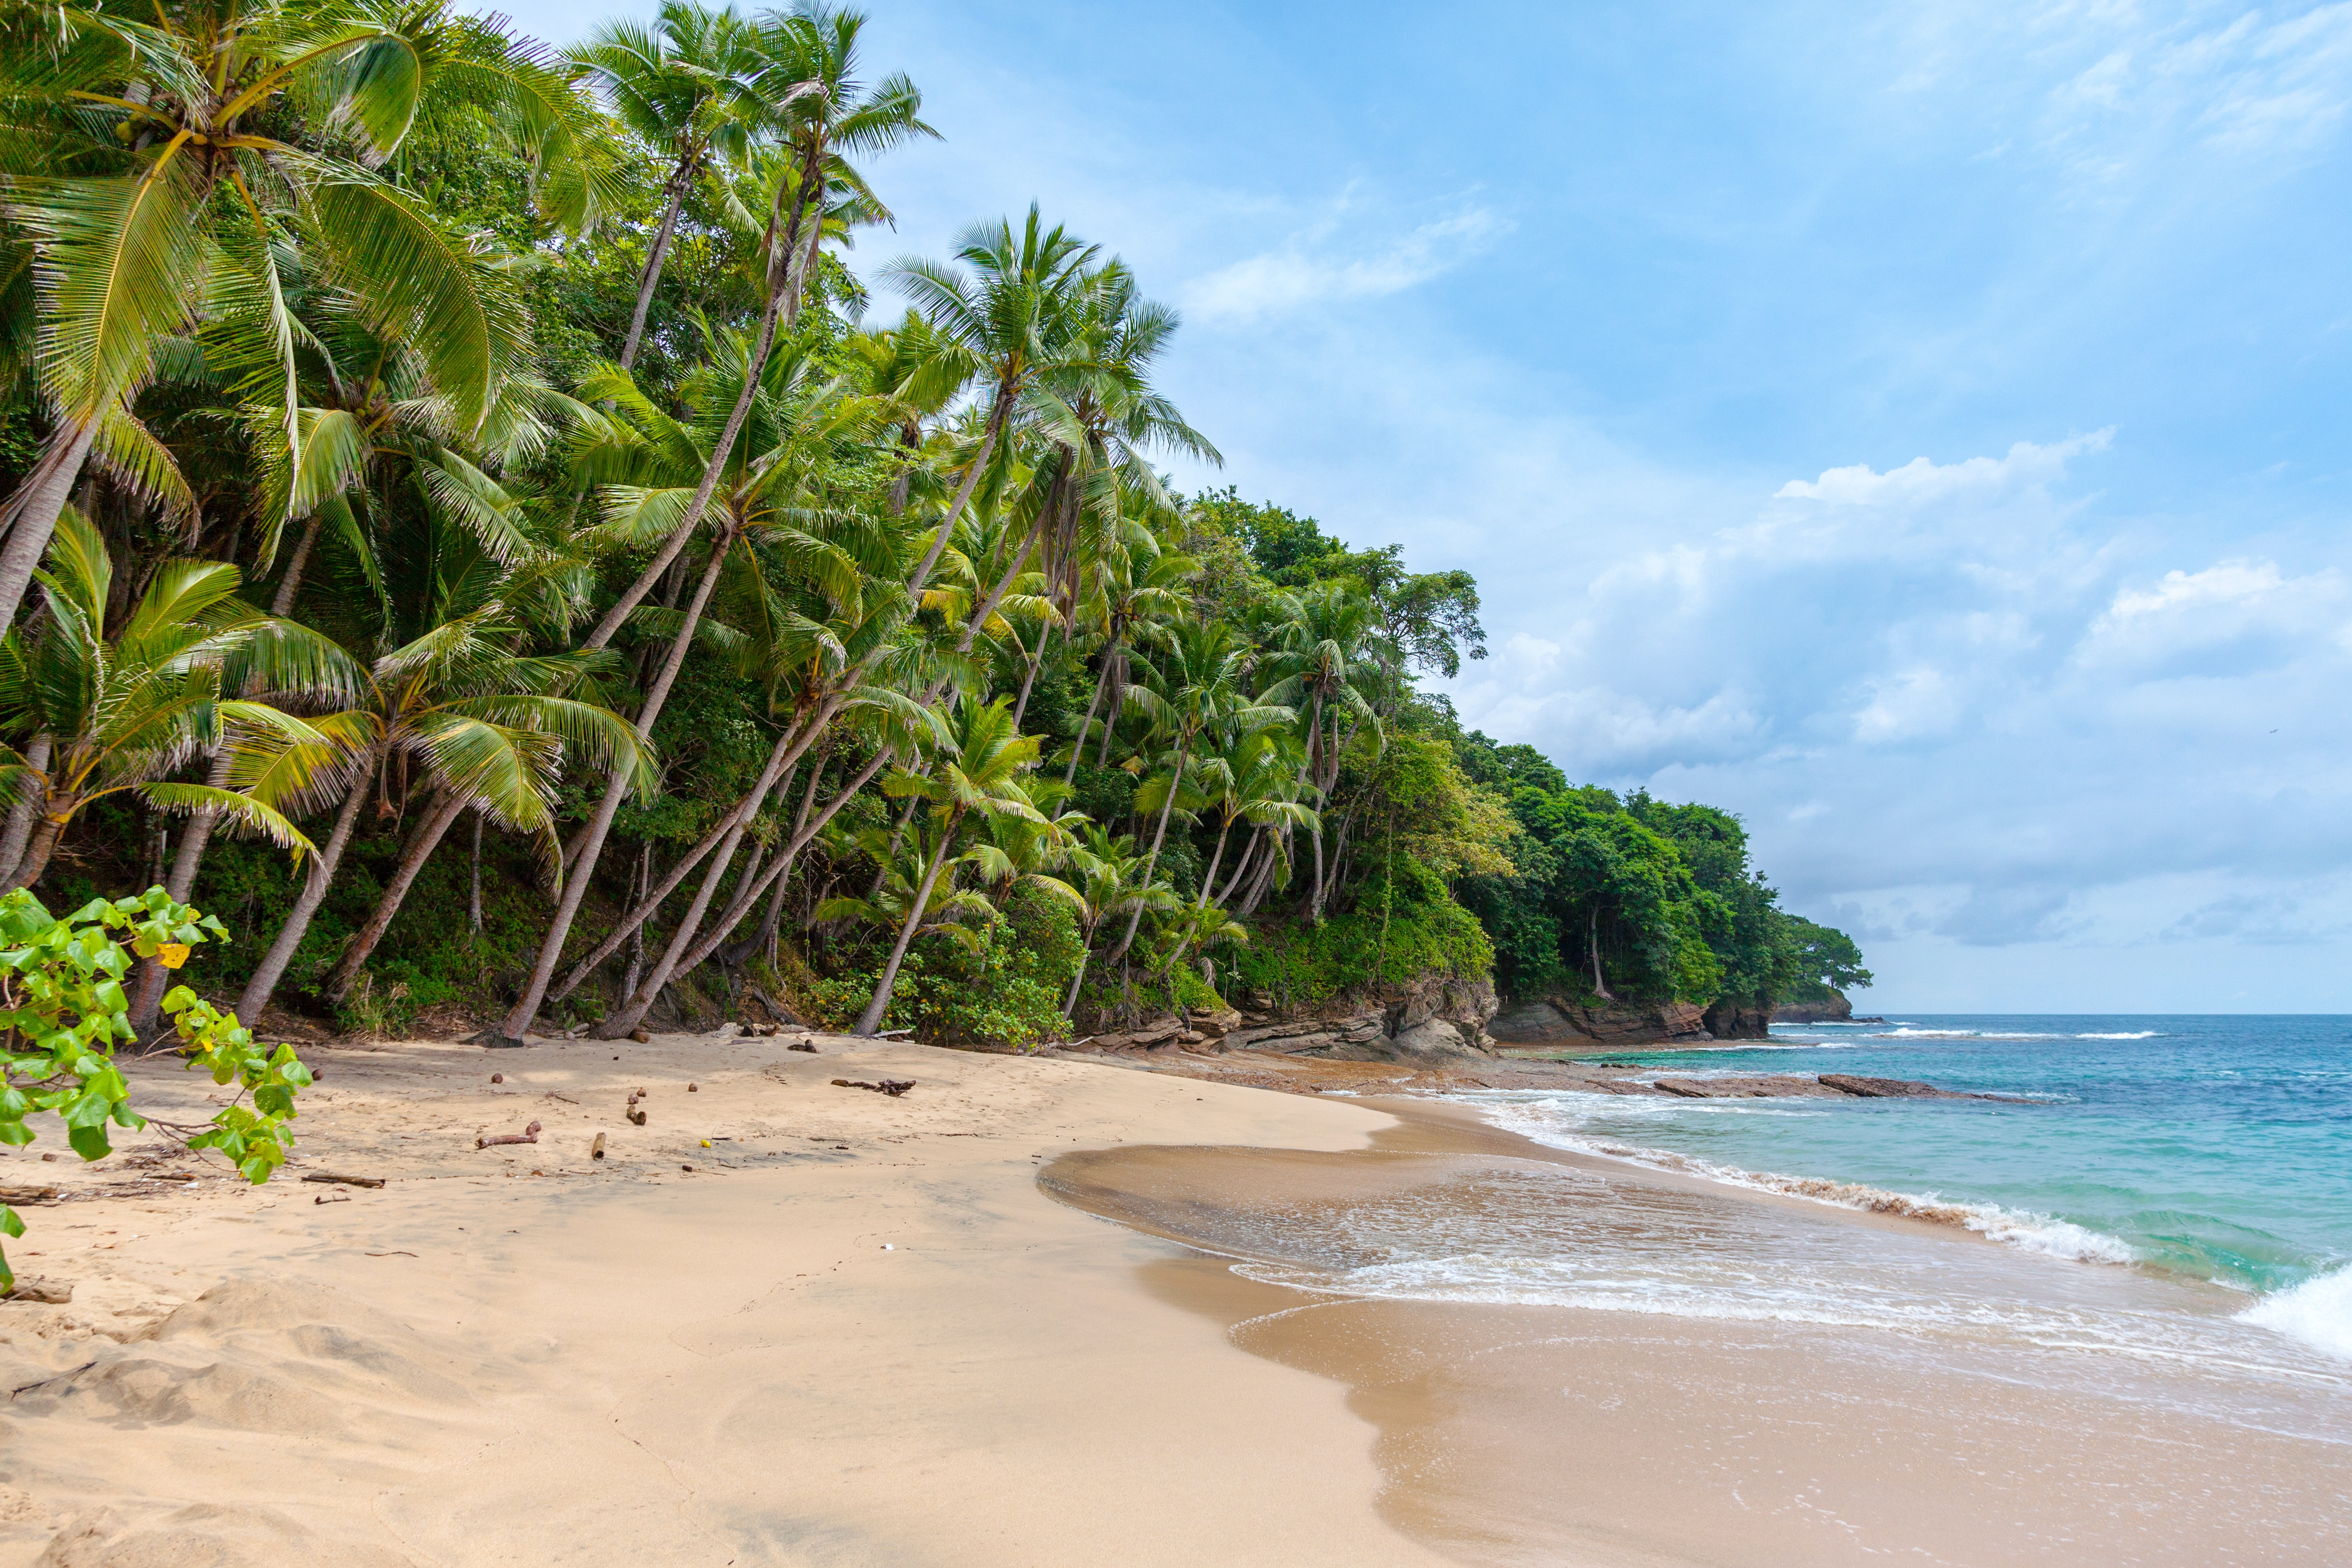 Palm trees leaning forward towards the sea on a secluded beach